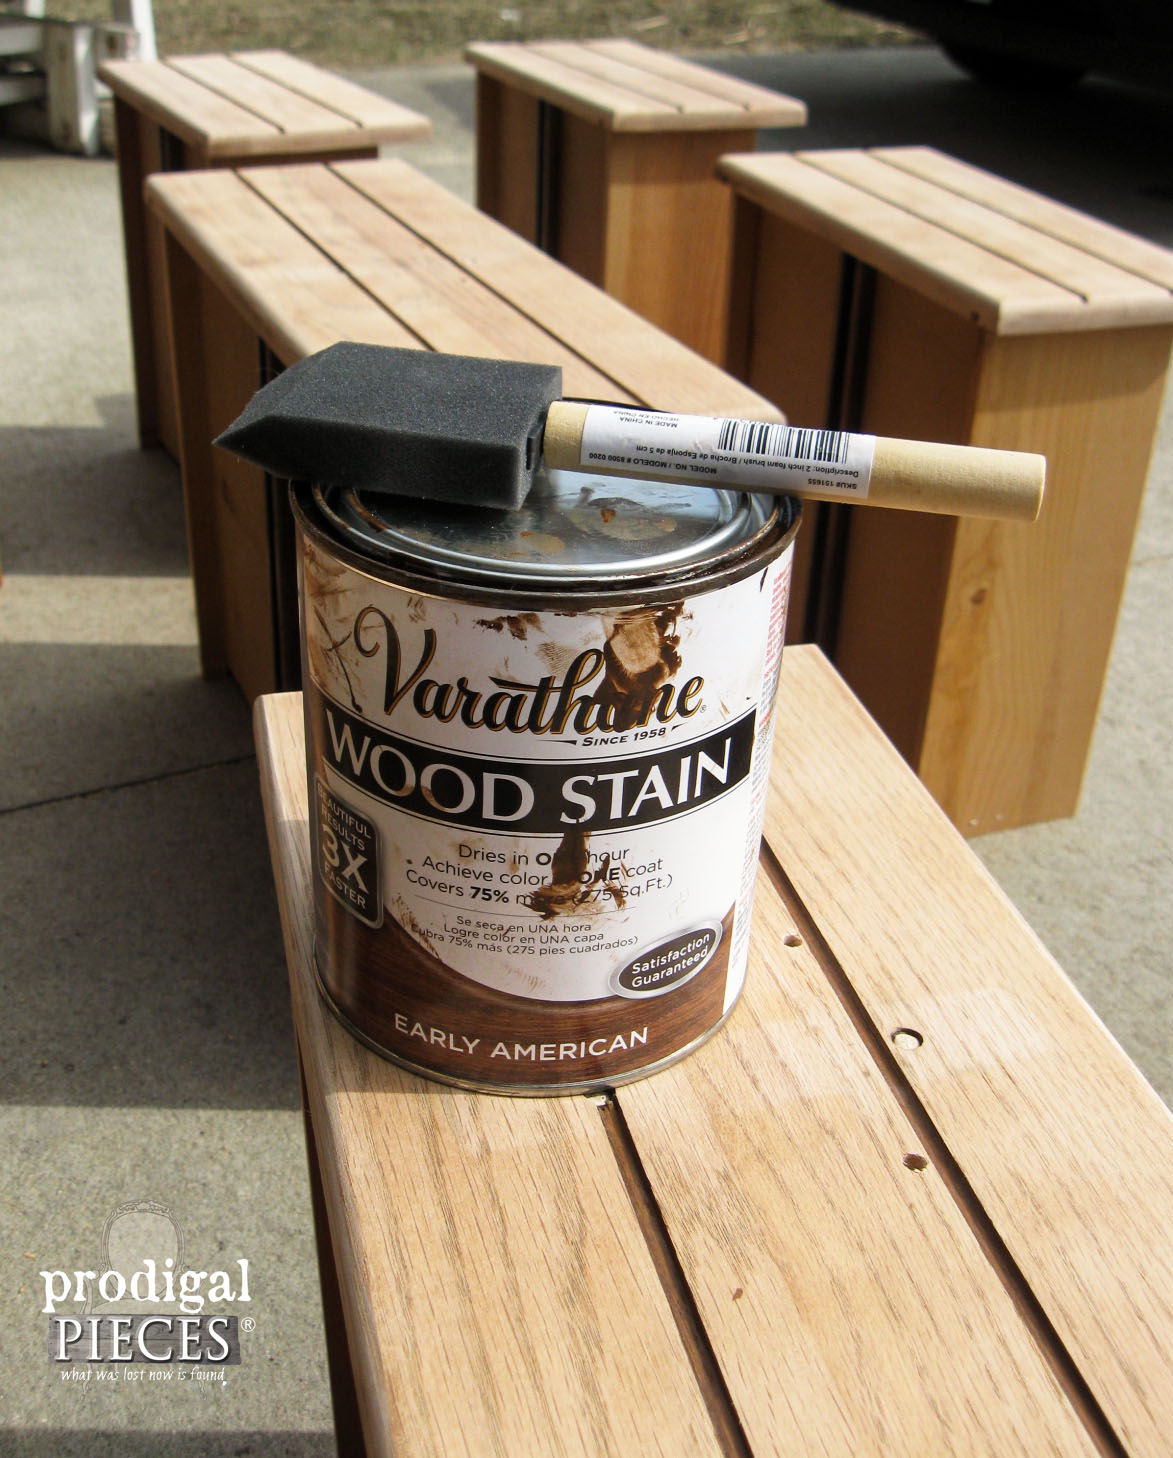 Early American Varathane Stain by Rustoleum | Prodigal Pieces | www.prodigalpieces.com